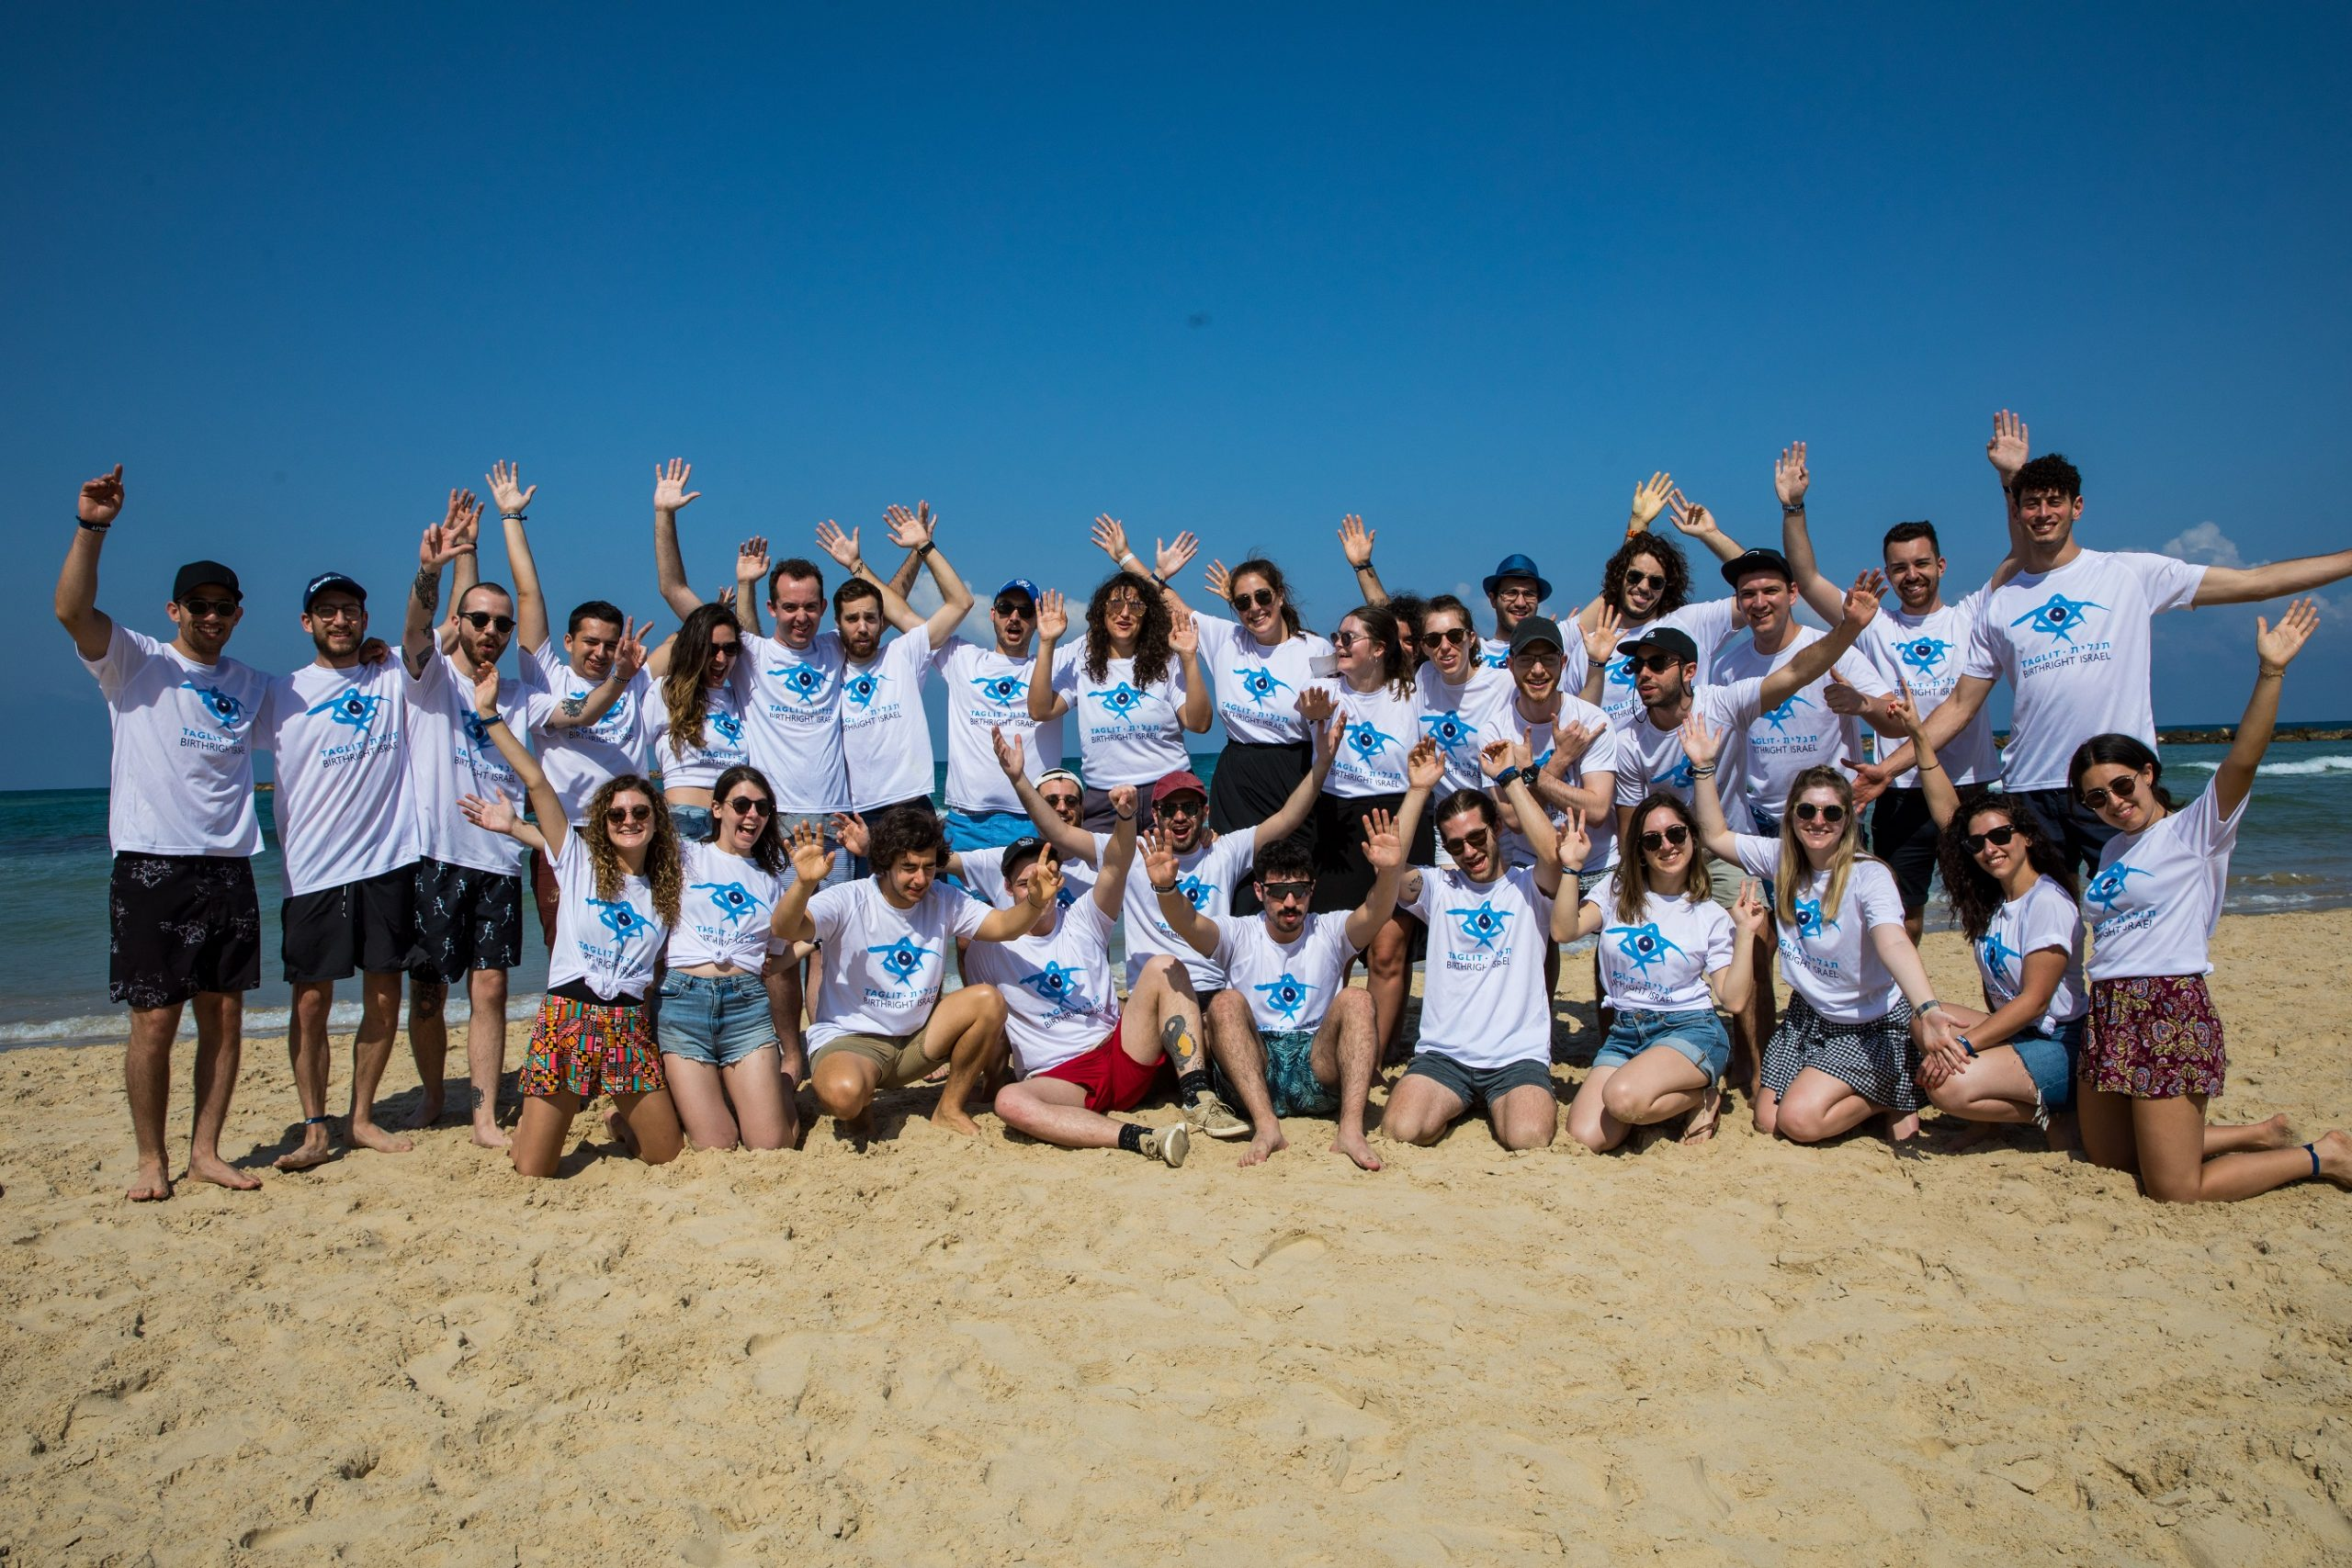 Israel Programs - Taglit-Birthright Israel